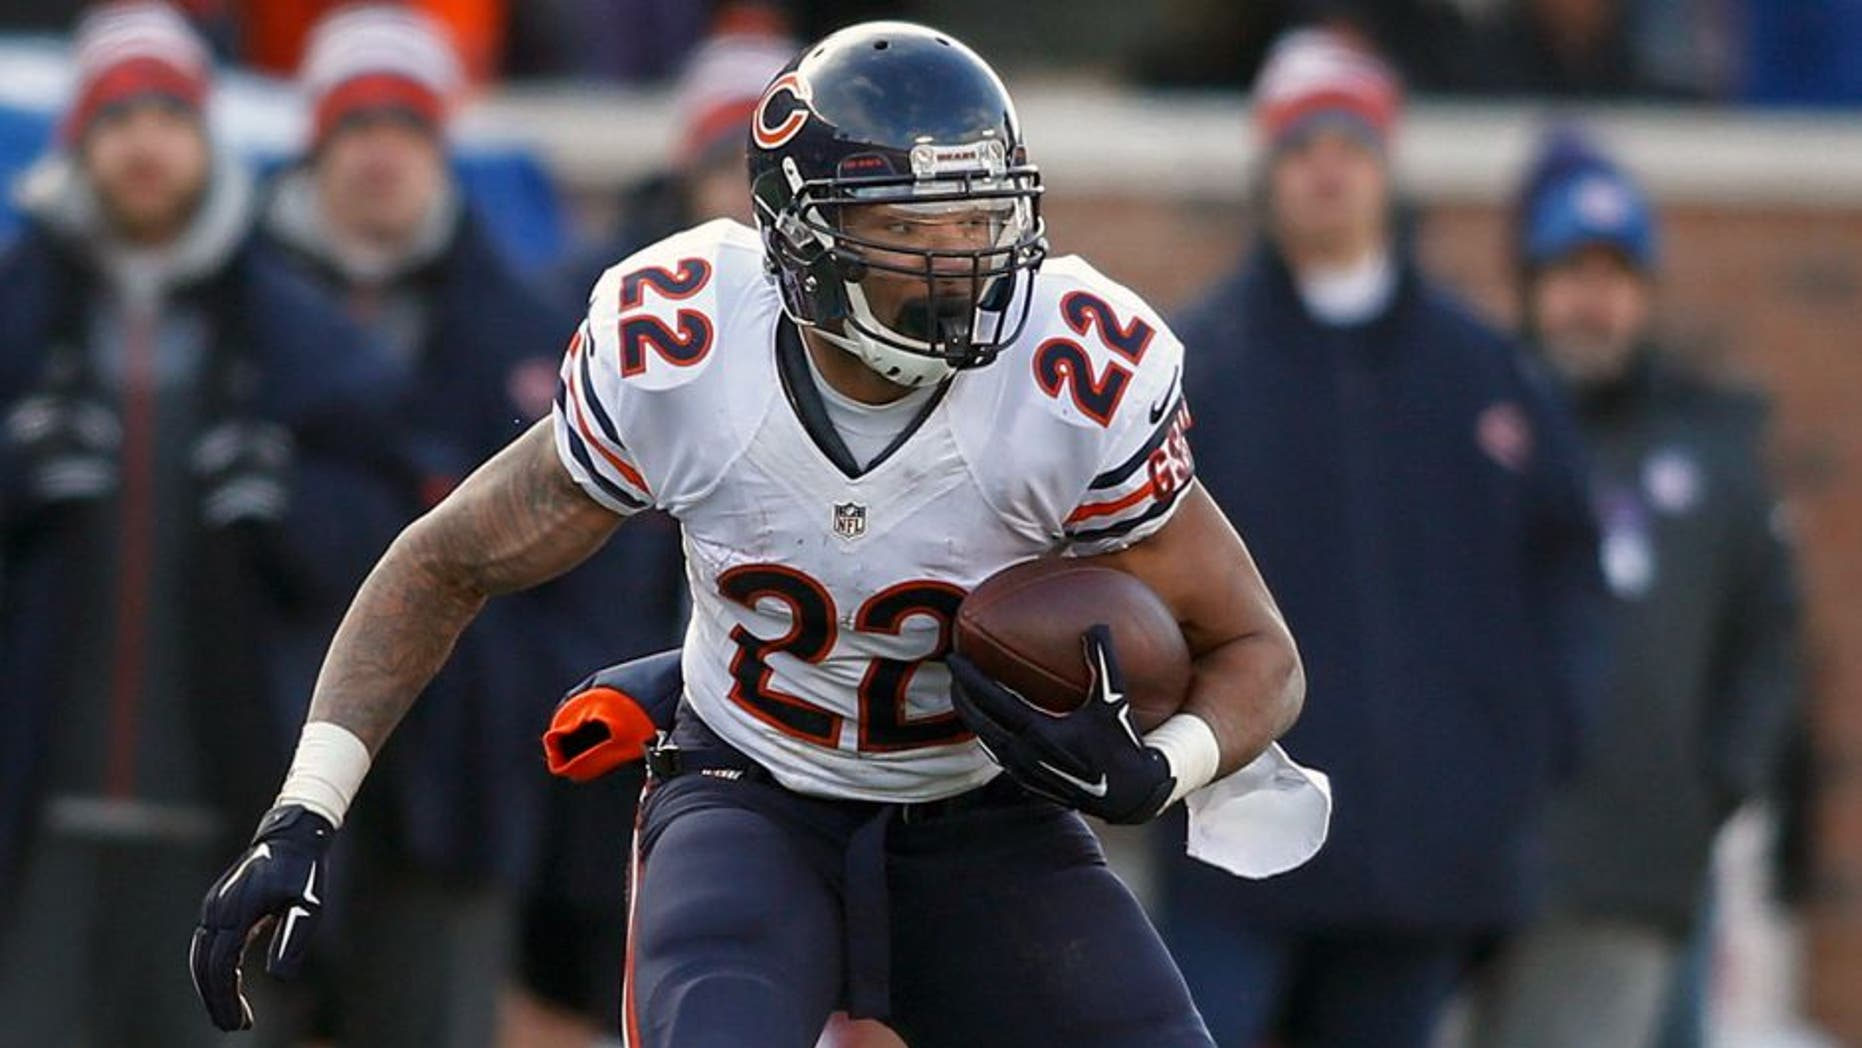 Dec 28, 2014; Minneapolis, MN, USA; Chicago Bears running back Matt Forte (22) catches a pass against the Minnesota Vikings in the third quarter at TCF Bank Stadium. The Vikings win 13-9. Mandatory Credit: Bruce Kluckhohn-USA TODAY Sports